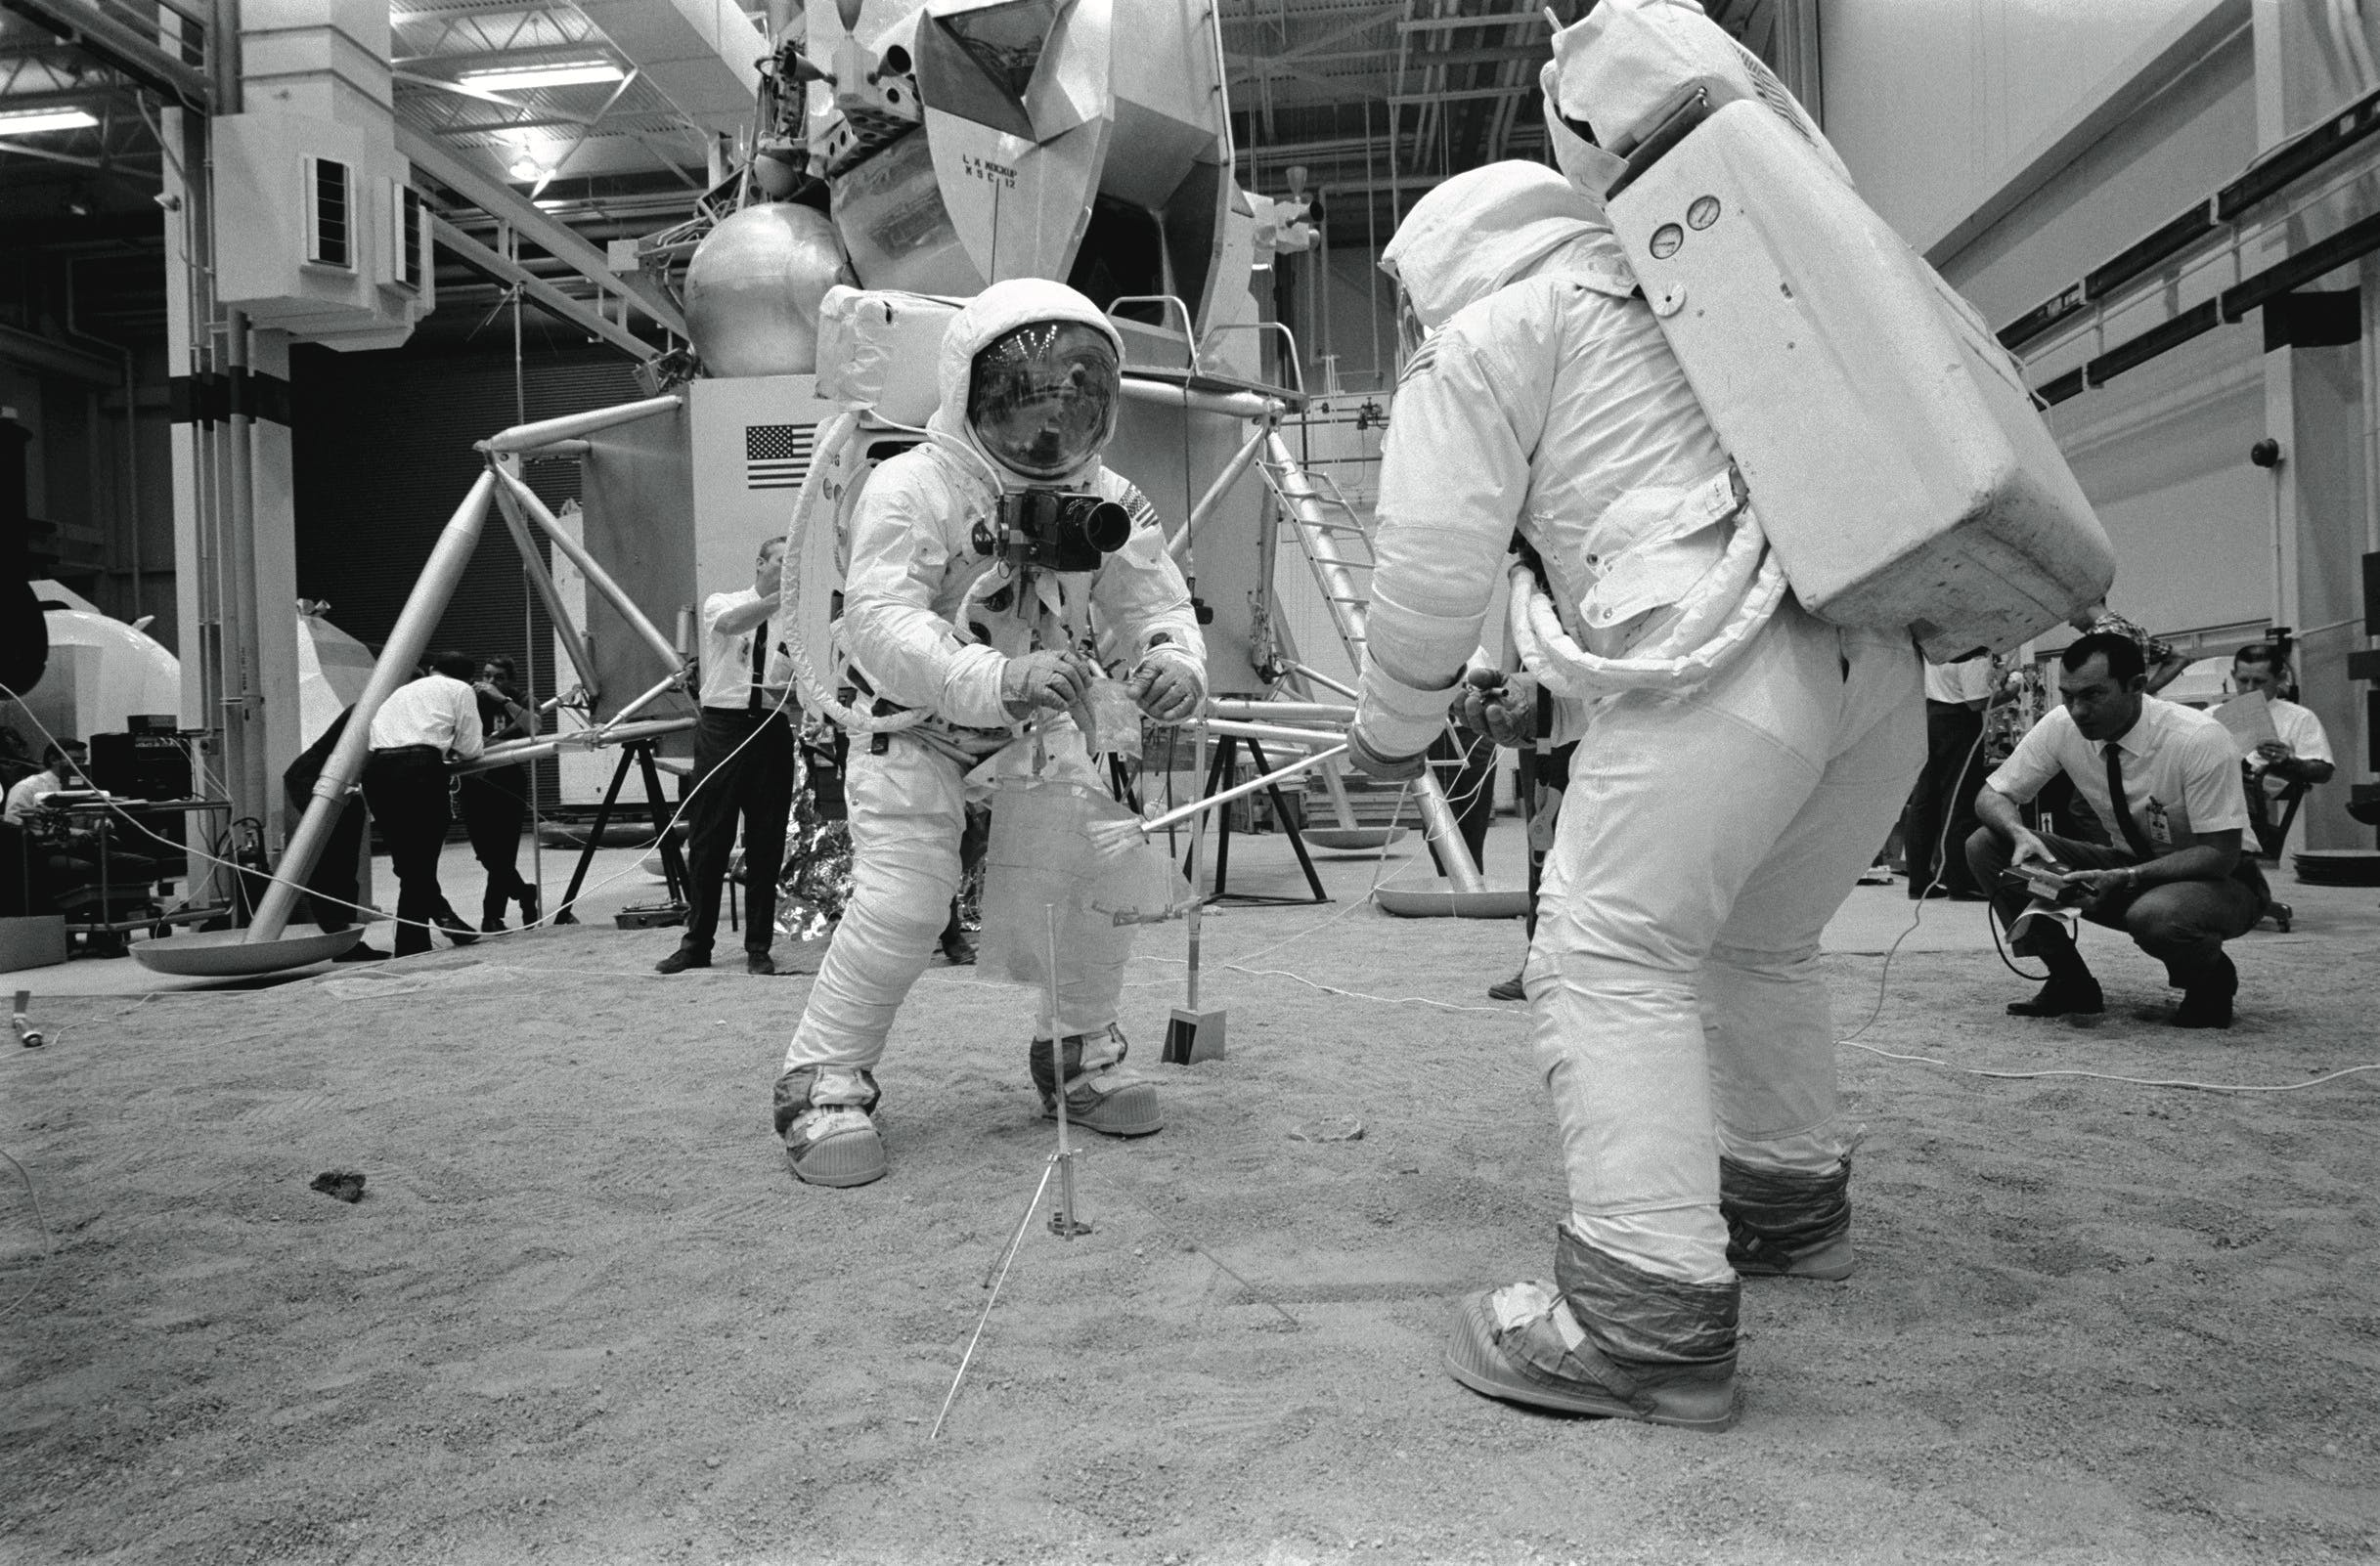 Armstrong and Aldrin practice taking lunar samples.